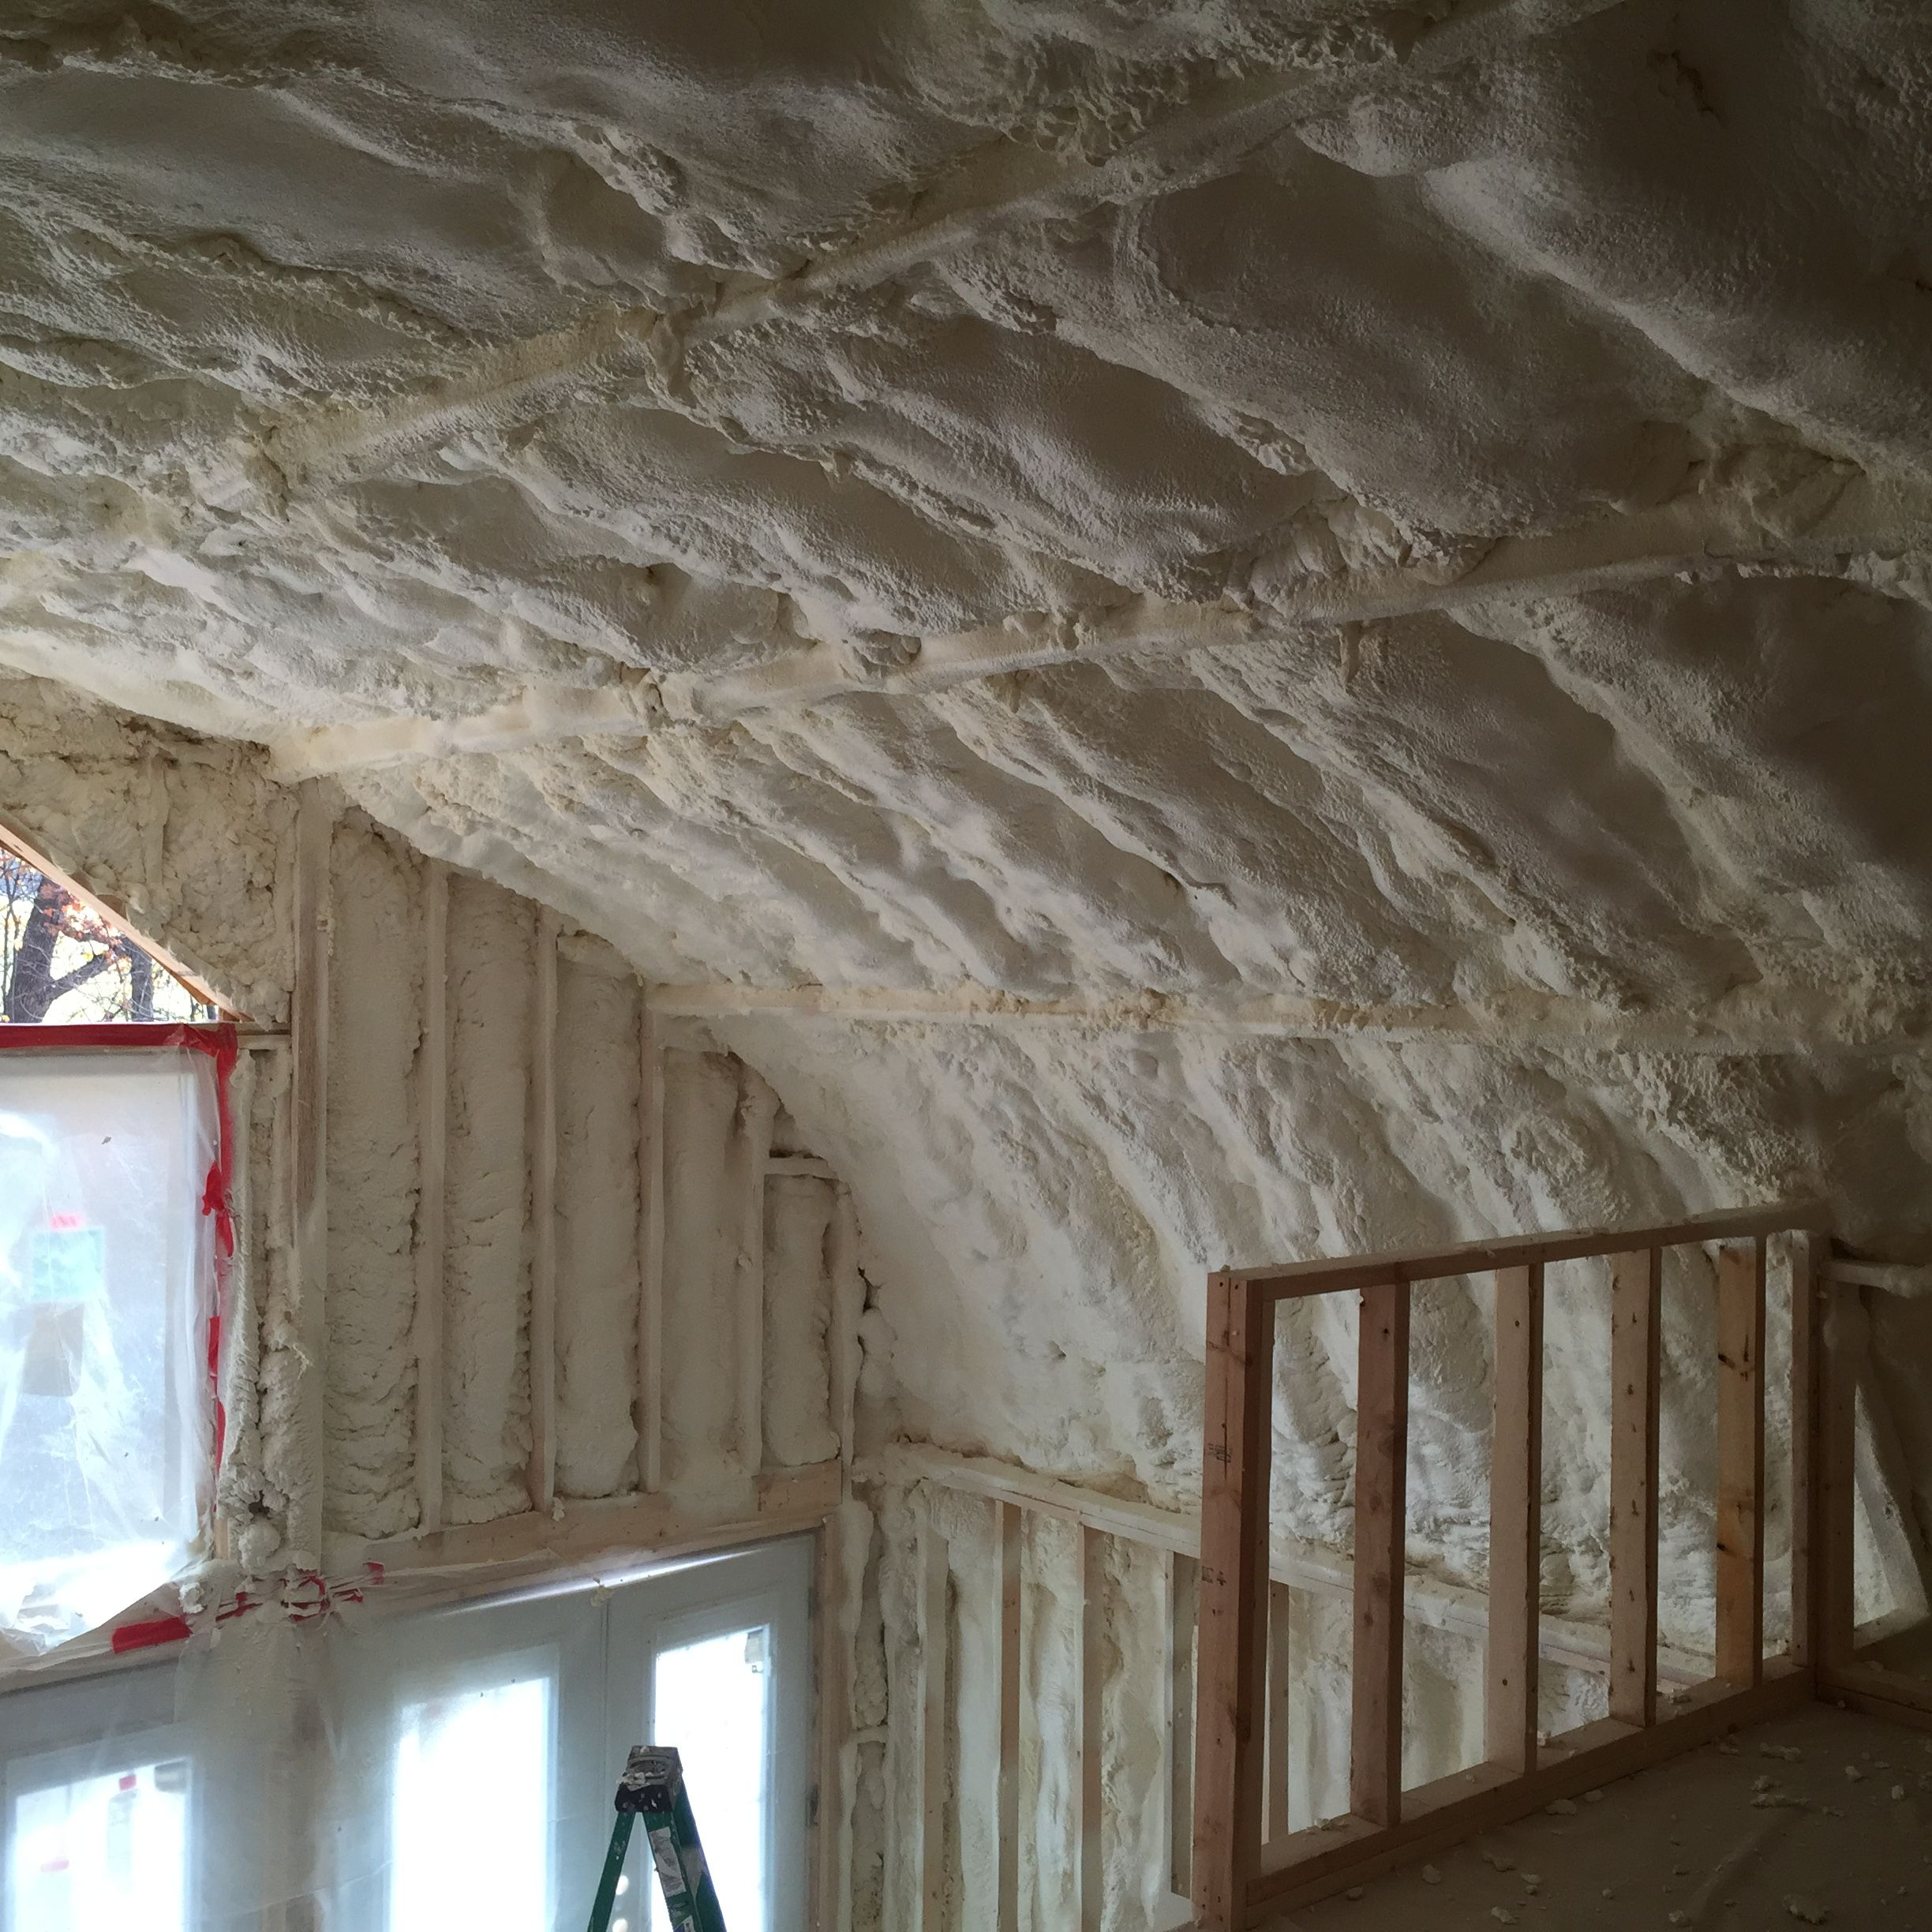 Spray foam insulation on ceiling of quonset hut. My